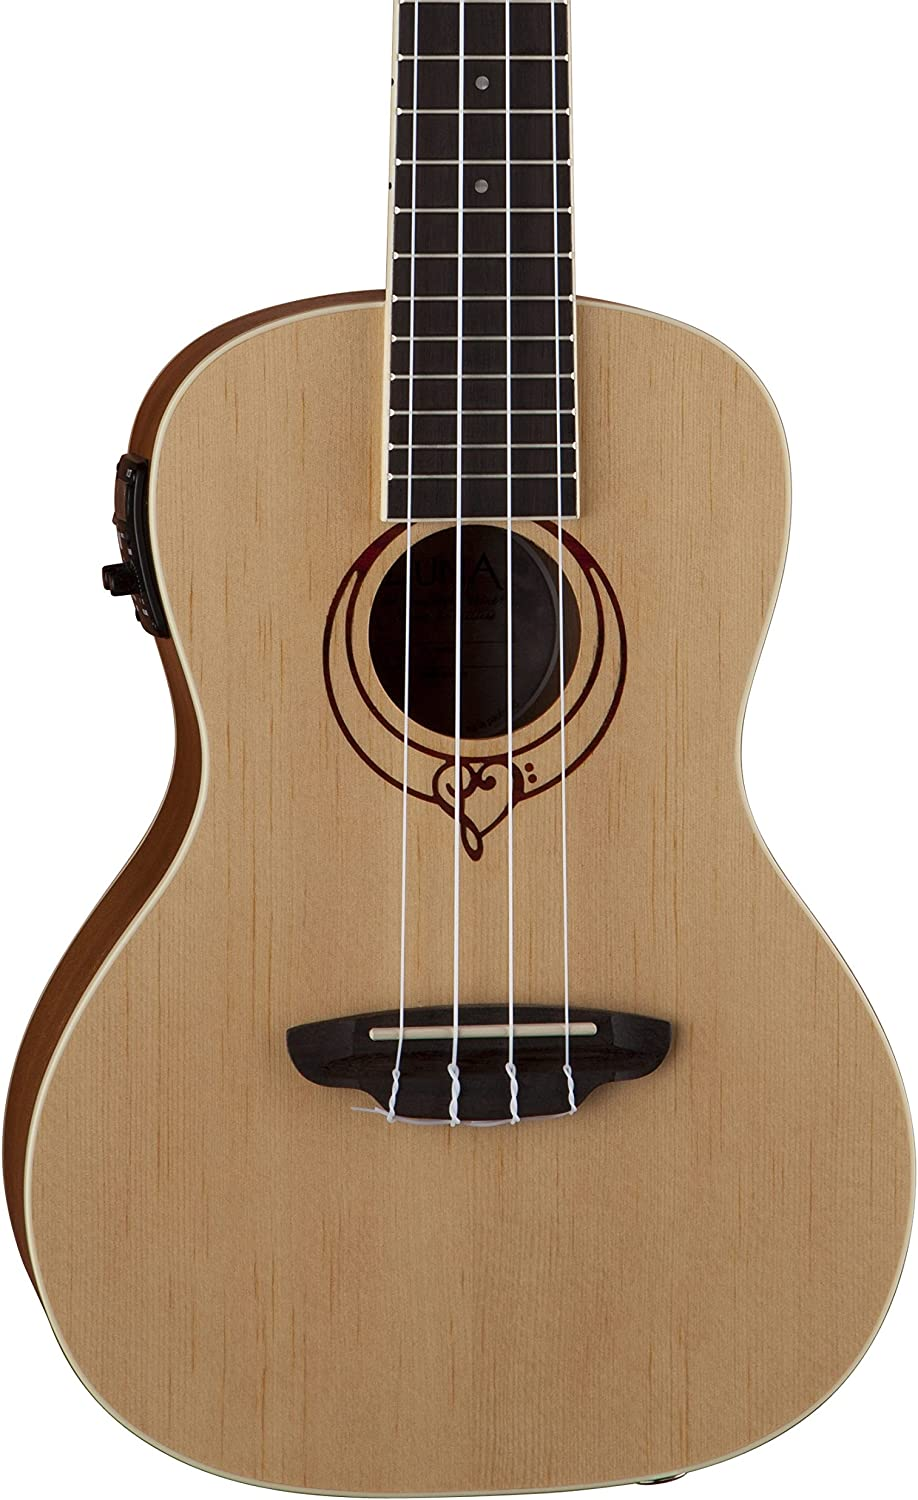 Luna Cheap Heartsong Spruce Cheap super special price Acoustic Electric Concert USB Ukulele with